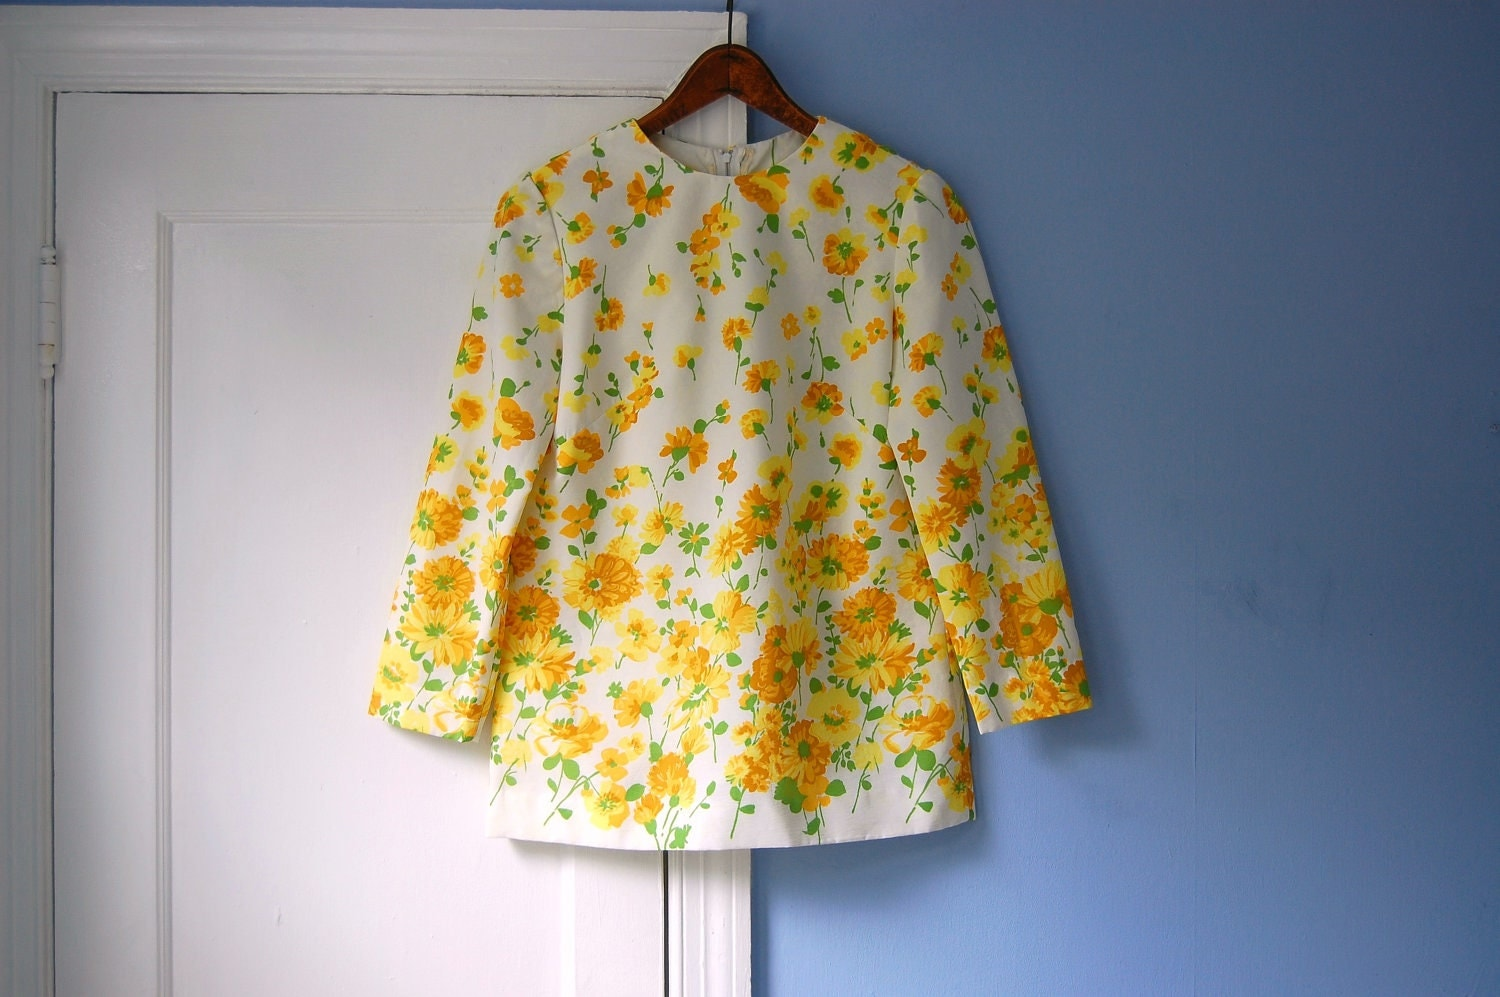 Floral blouse vintage yellow shirt 60s top by ottolinesoddities